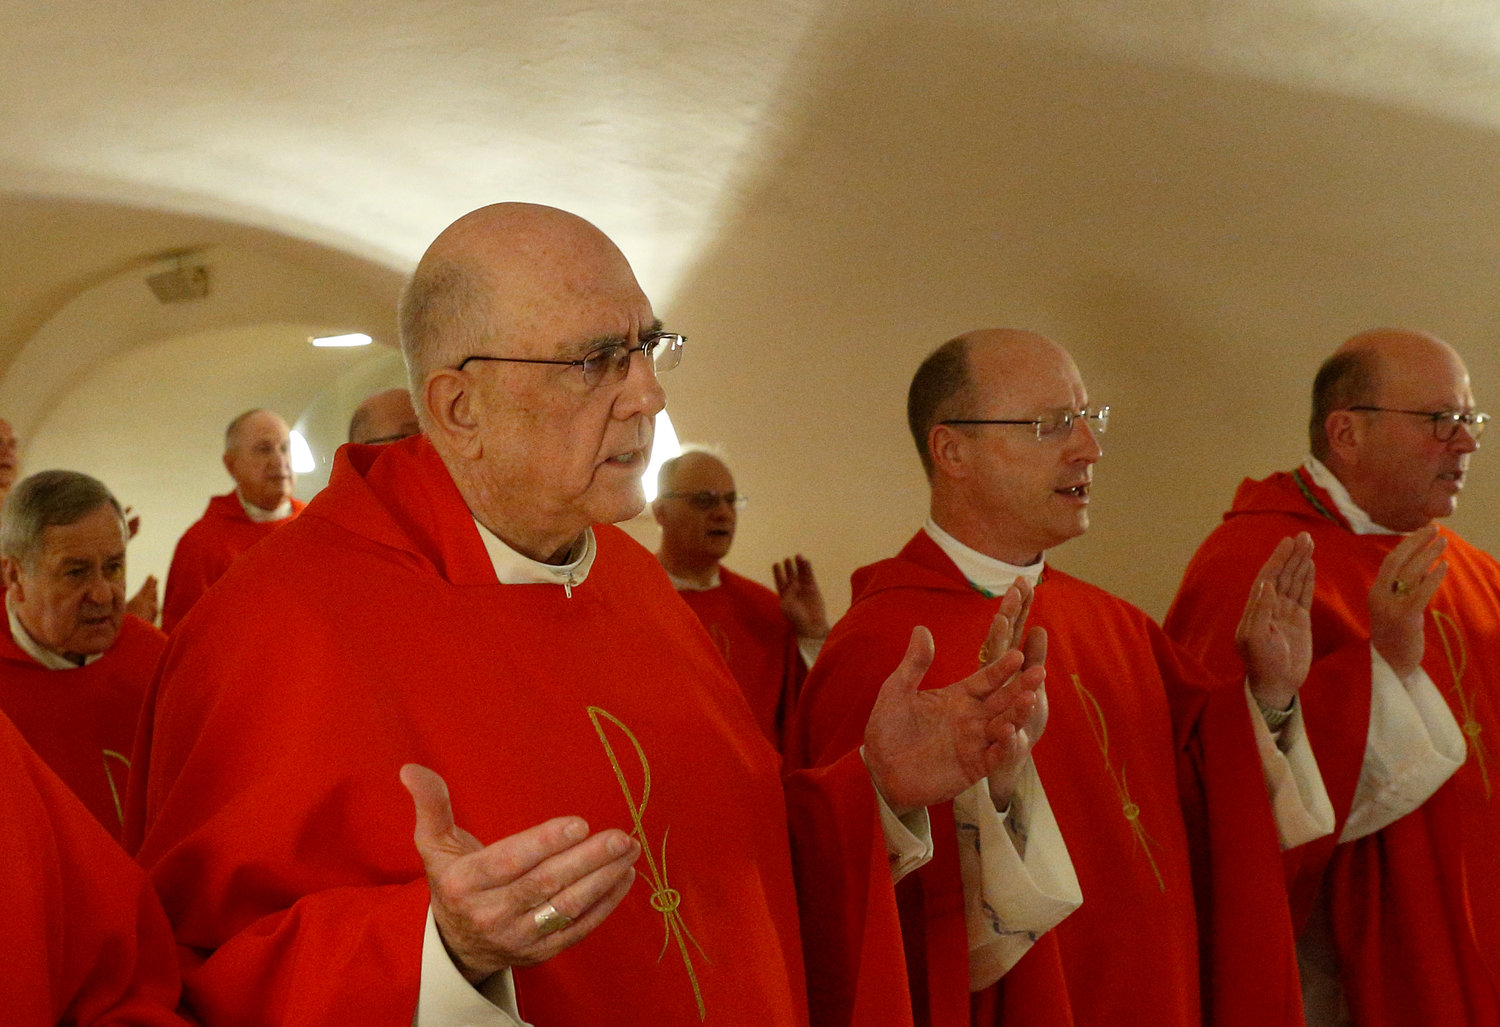 "Archbishop Joseph F. Naumann of Kansas City, Kan., left, Bishop W. Shawn McKnight of Jefferson City, Mo., and Bishop Carl A. Kemme of Wichita, Kan., pray the Lord's Prayer as U.S. bishops from Iowa, Kansas, Missouri and Nebraska concelebrate Mass in the crypt of St. Peter's Basilica at the Vatican Jan. 16, 2020. The bishops were making their ""ad limina"" visits to the Vatican to report on the status of their dioceses to the Pope and Vatican officials."